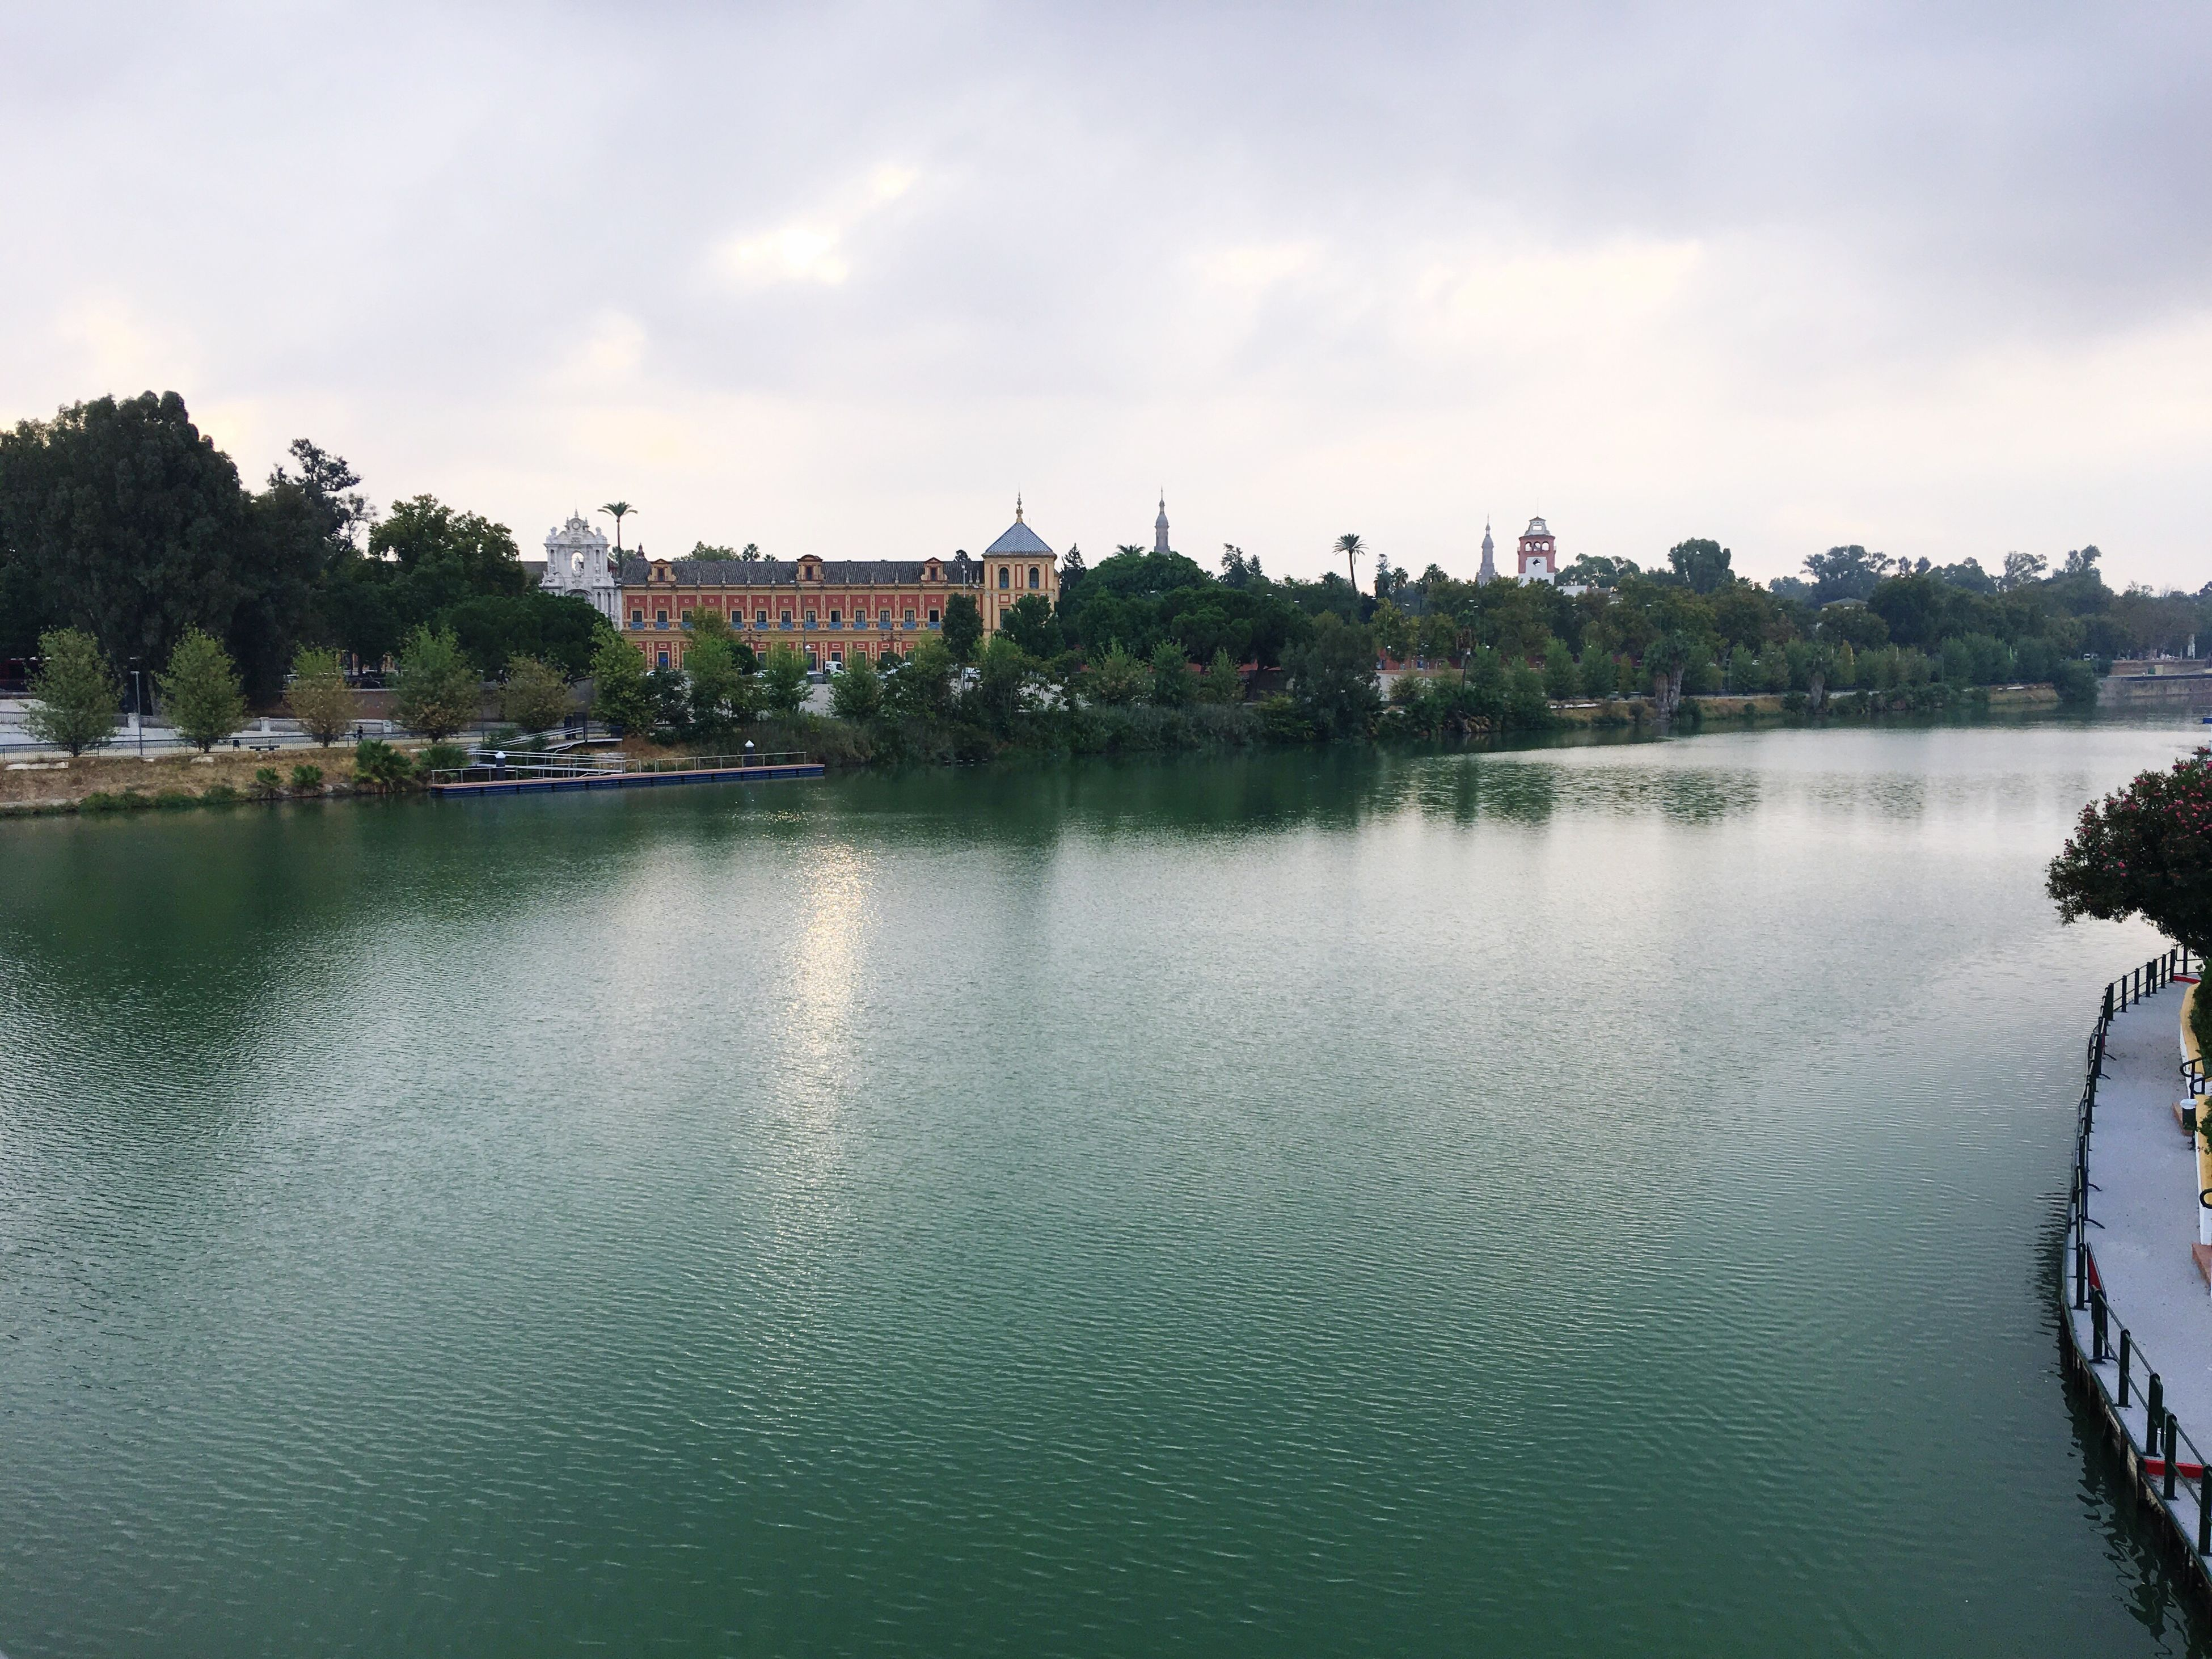 water, architecture, built structure, building exterior, sky, tree, waterfront, tranquility, tranquil scene, scenics, river, travel destinations, cloud, cloud - sky, day, nature, outdoors, town, no people, beauty in nature, tourism, city life, riverbank